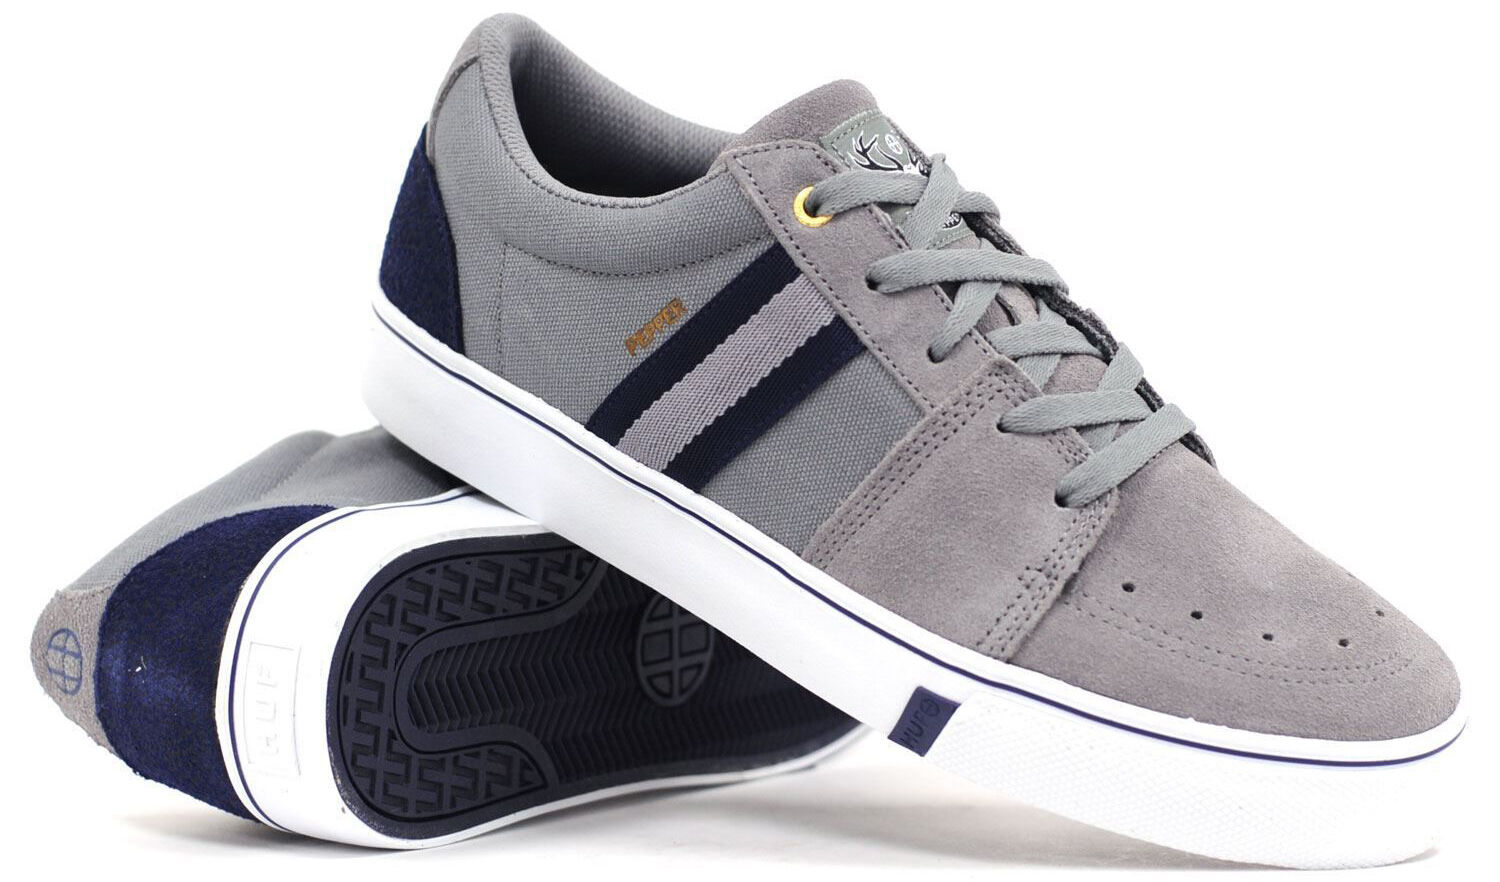 Skate shoes history